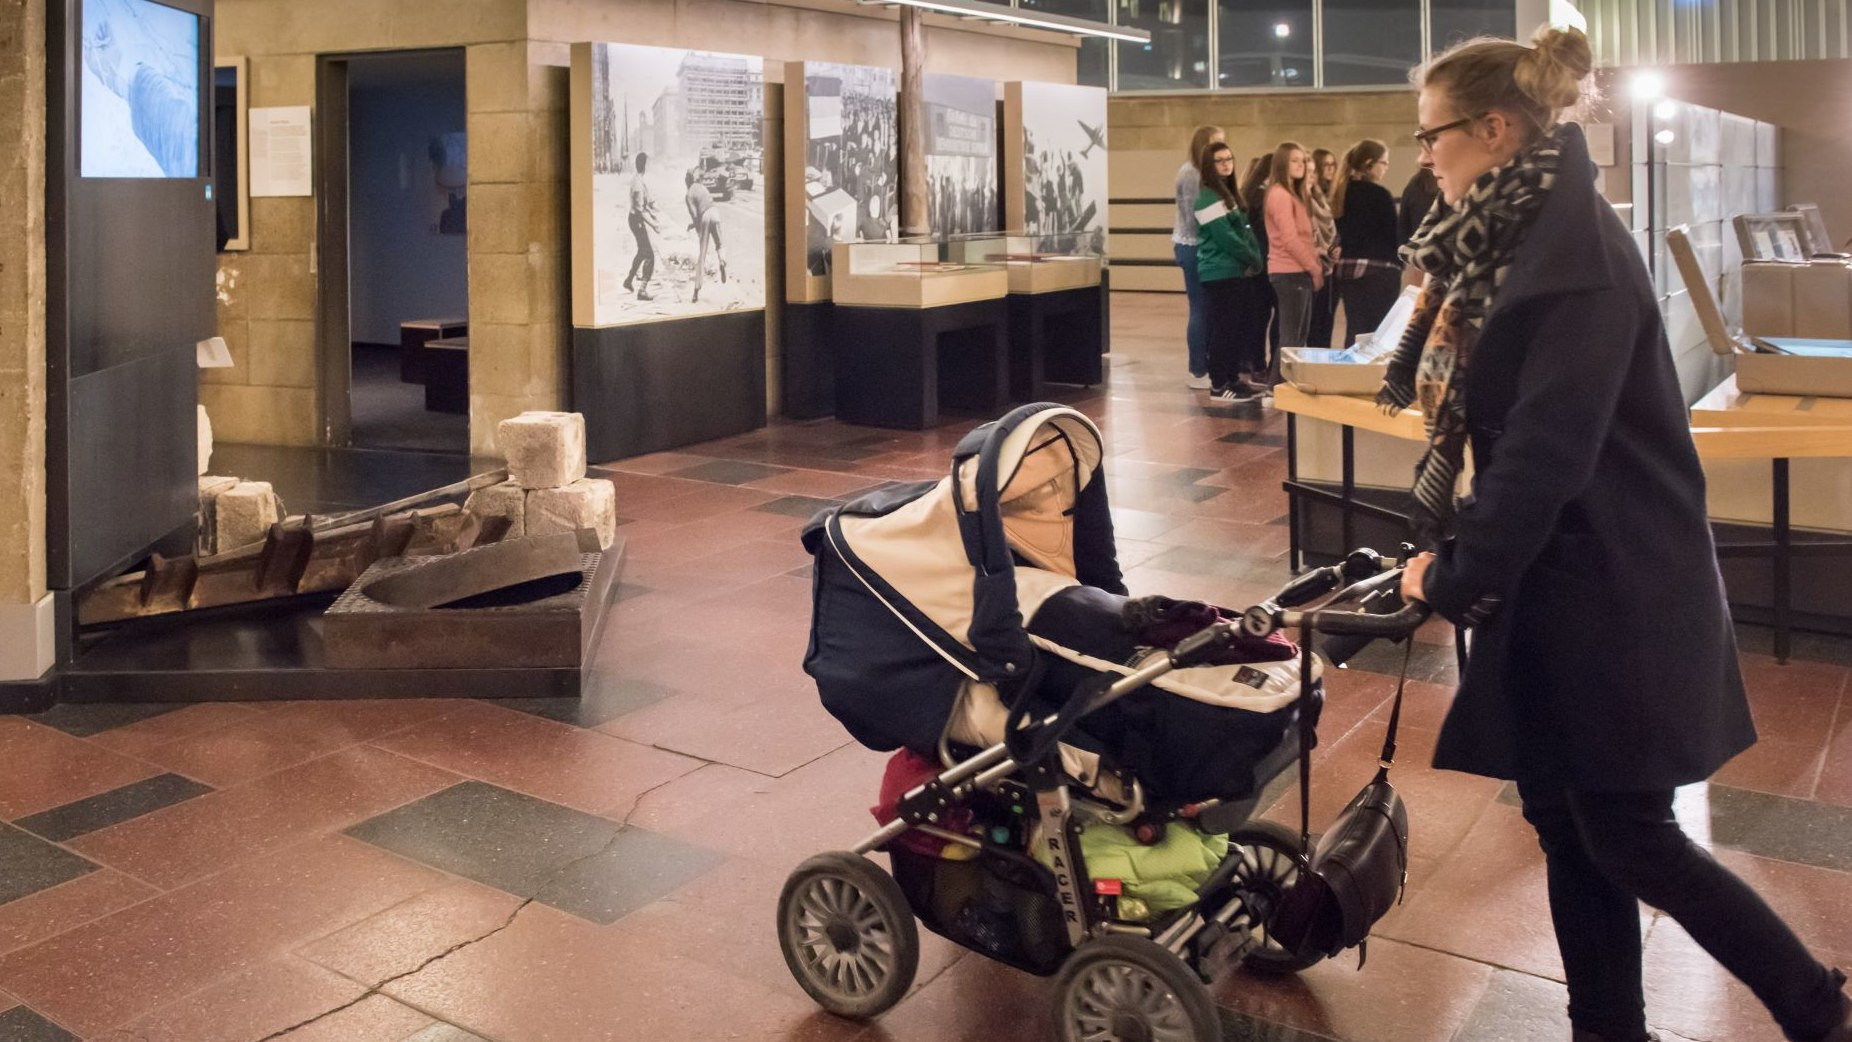 A young woman is walking through the exhibition with a buggy